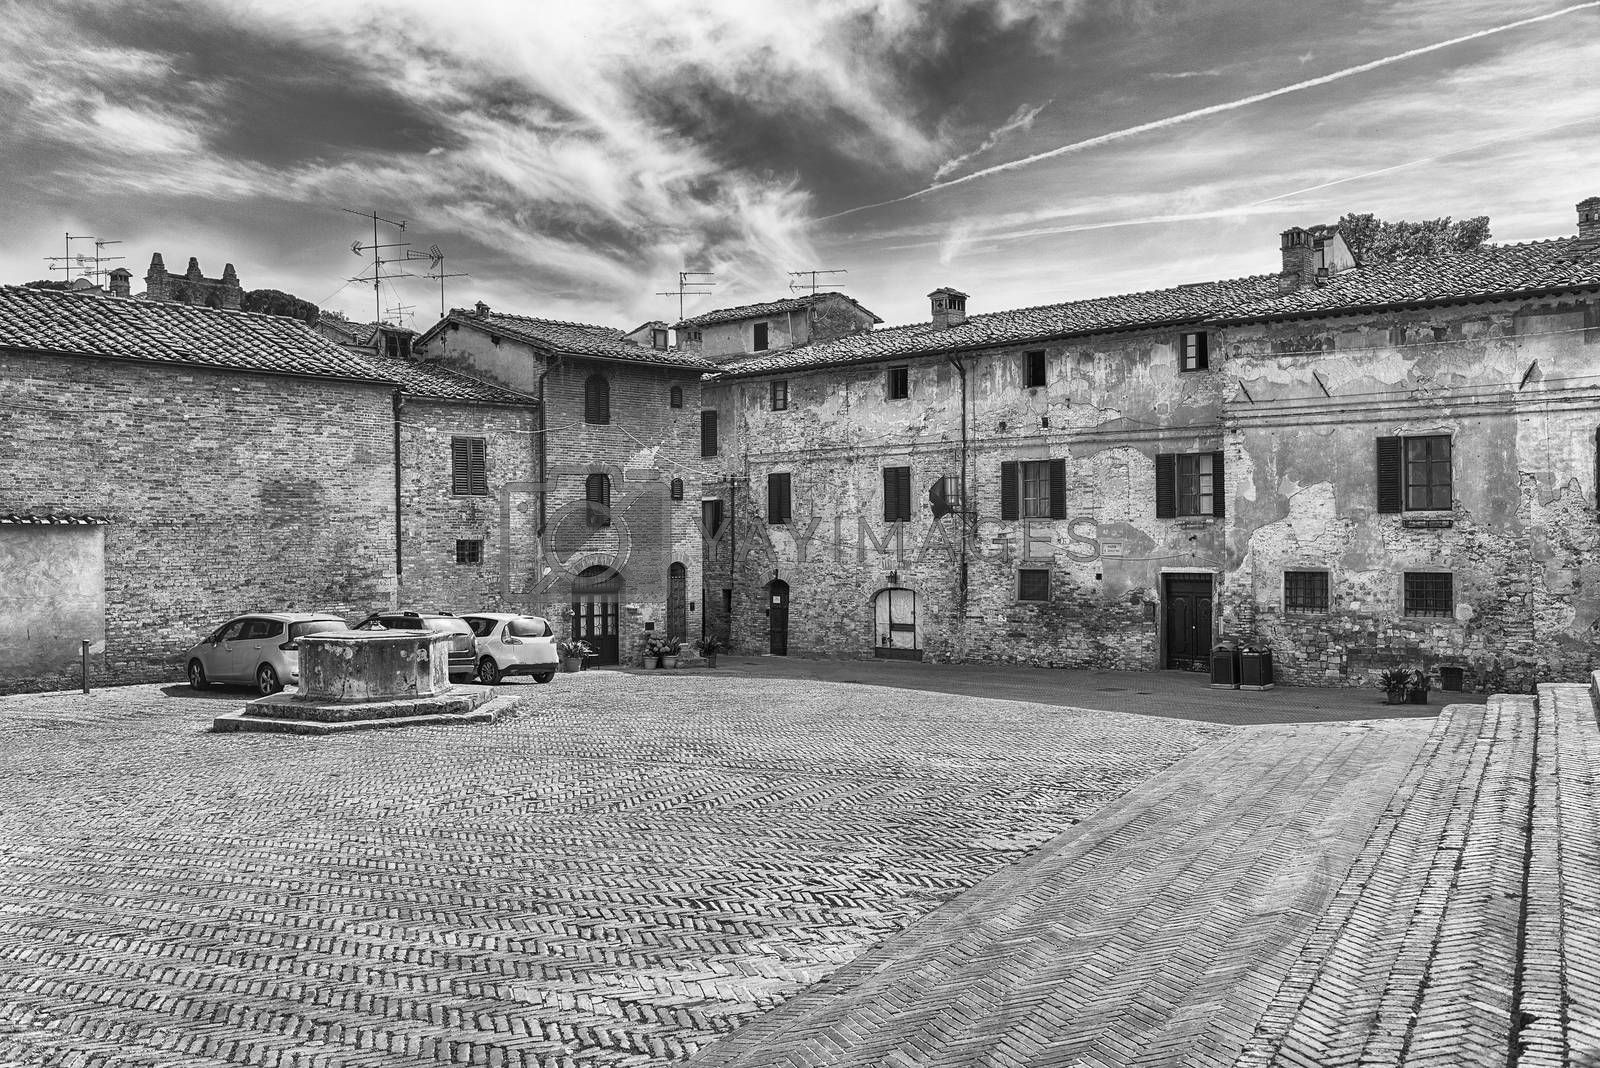 View of Sant'Agostino square in the medieval town of San Gimignano, Italy